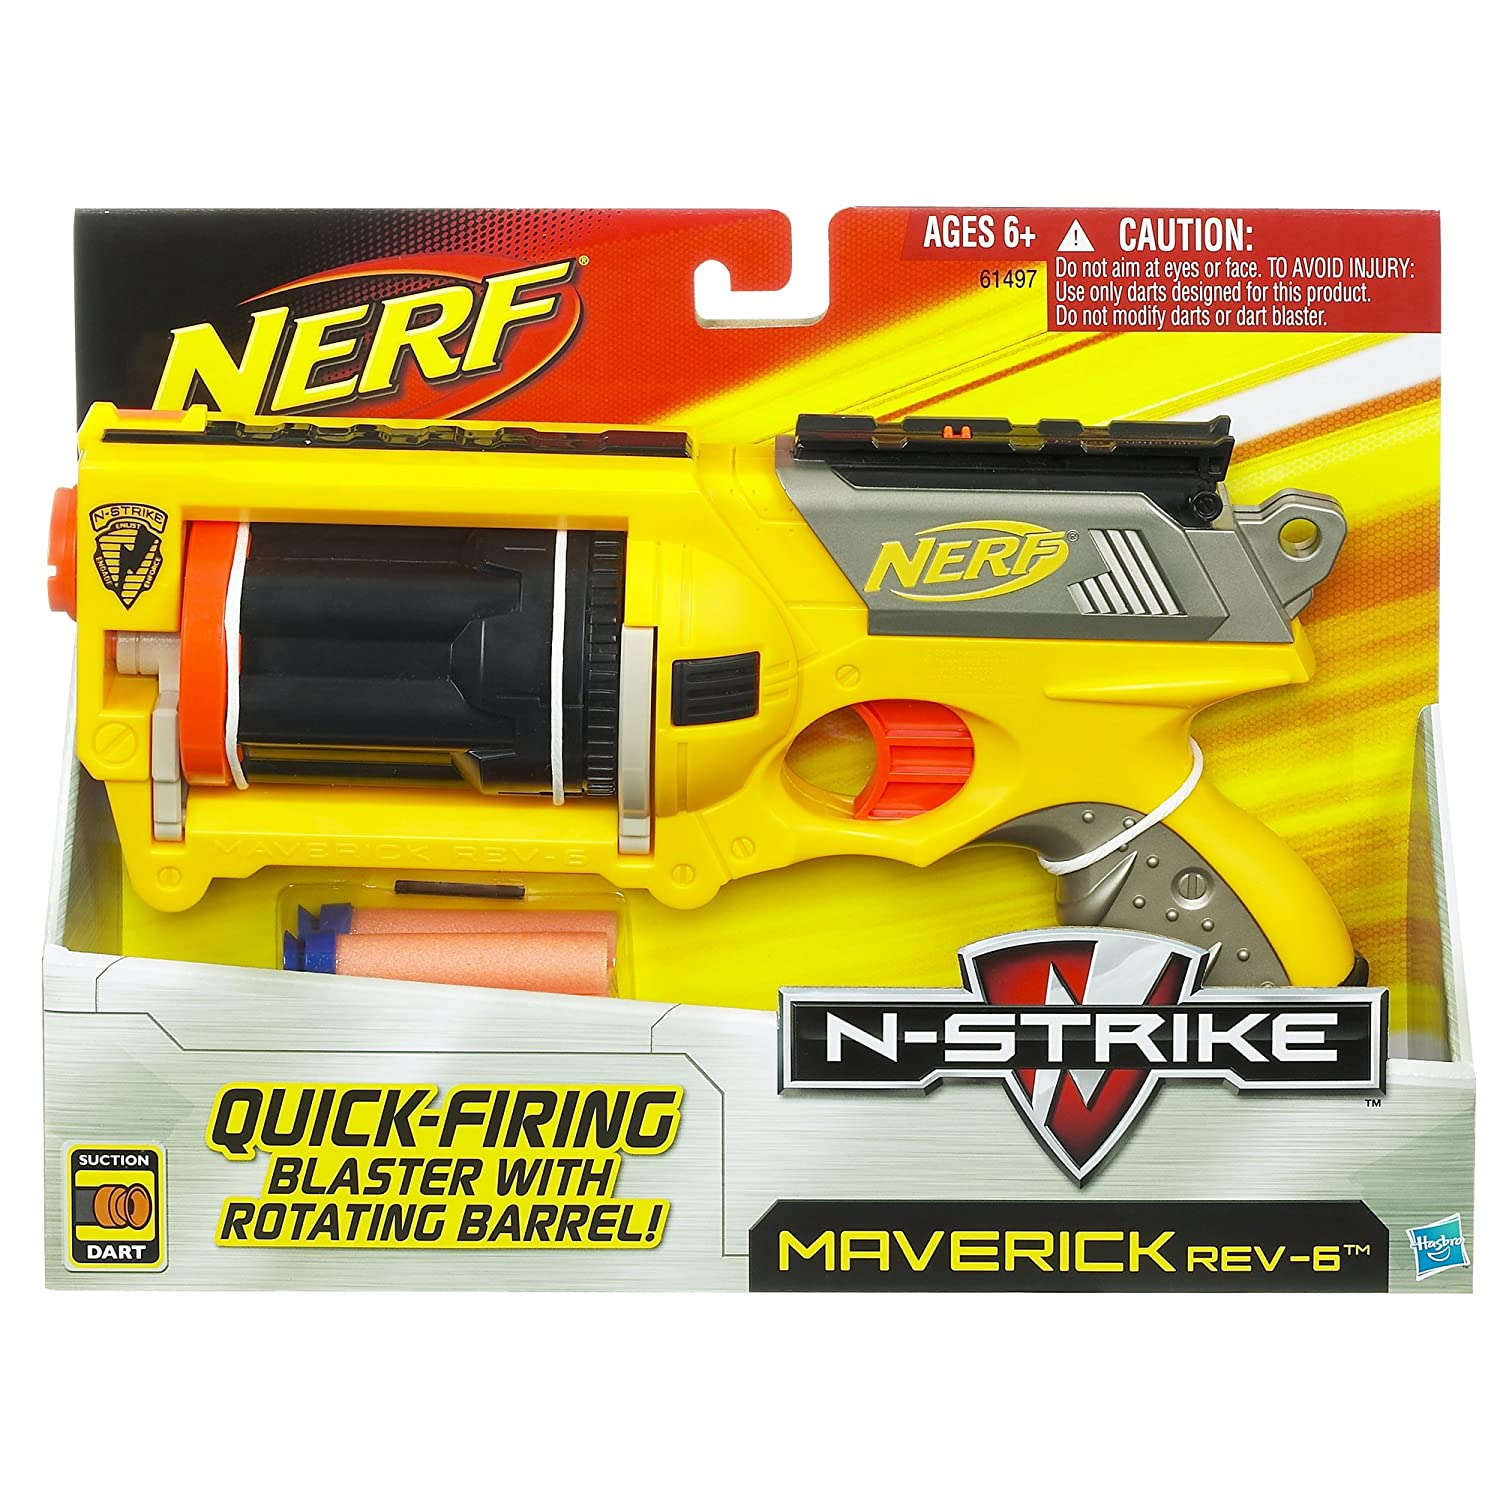 Amazon Nerf N Strike Maverick Colors May Vary Discontinued by manufacturer Toys & Games